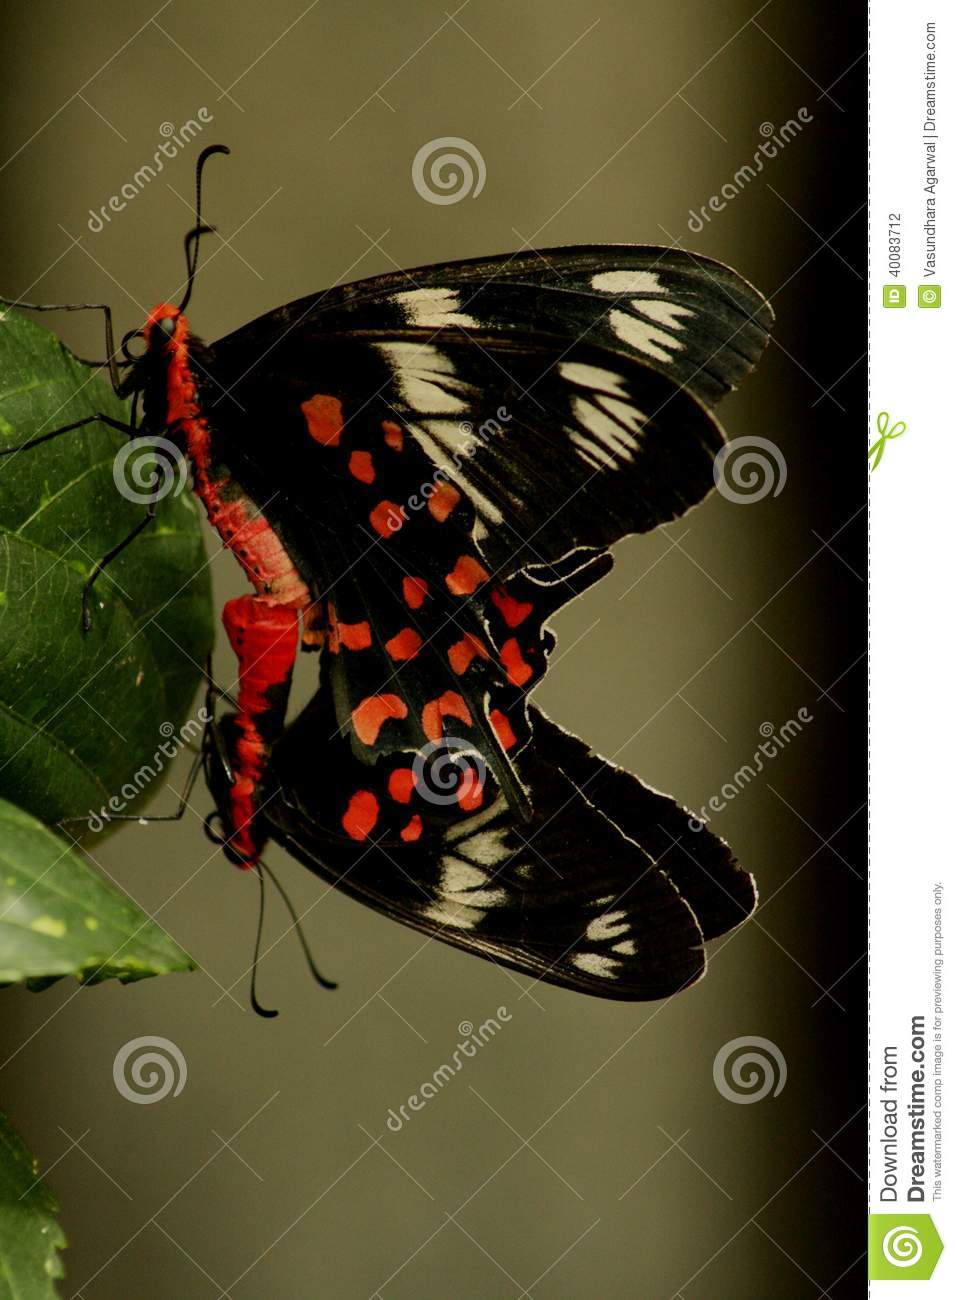 Mating butterflies, in nature. Artistic and beautiful.